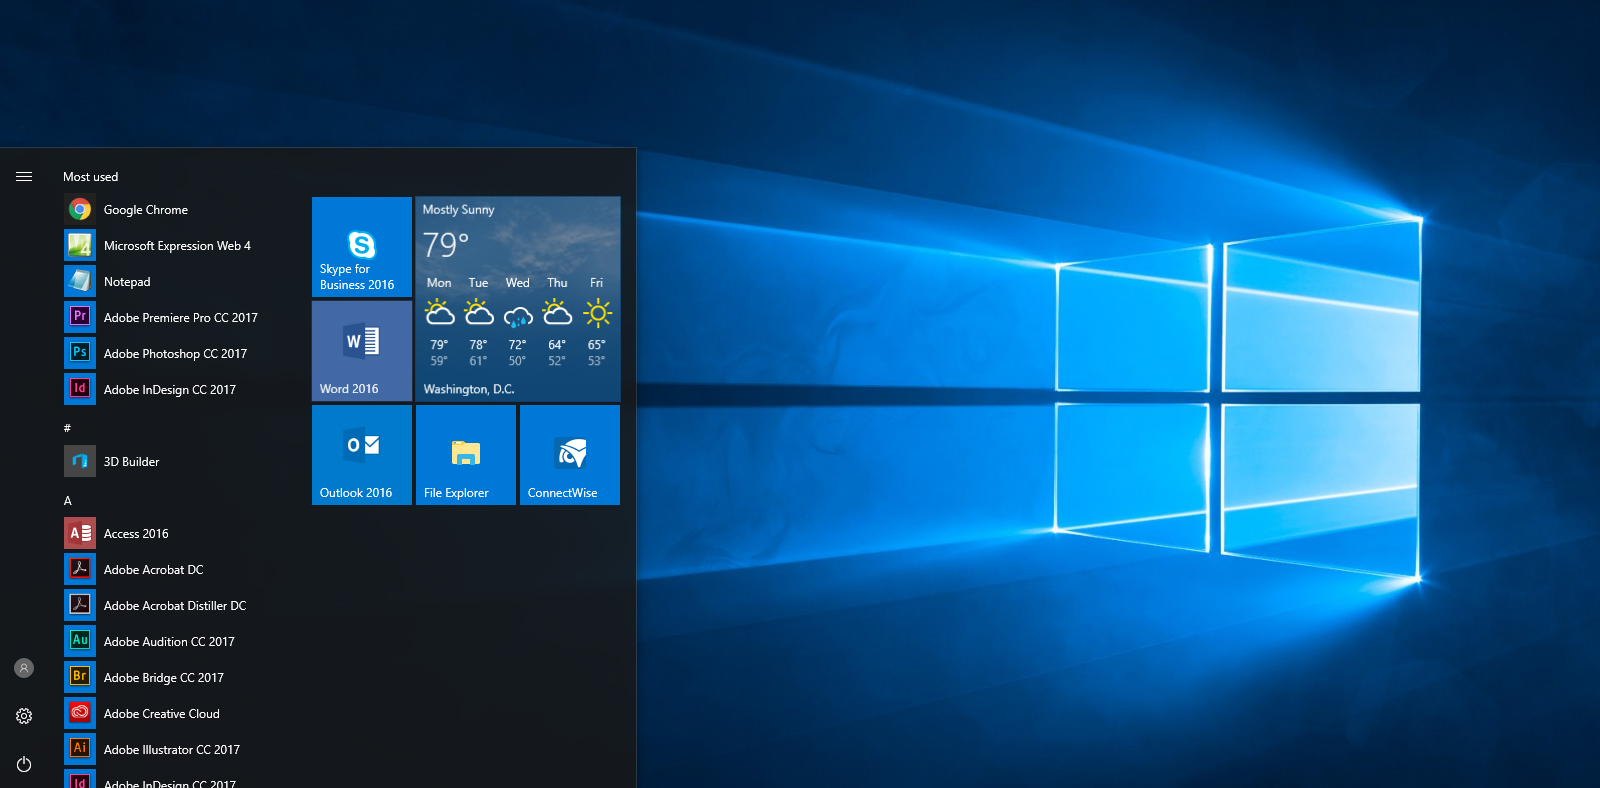 Customize your Windows 10 Start menu